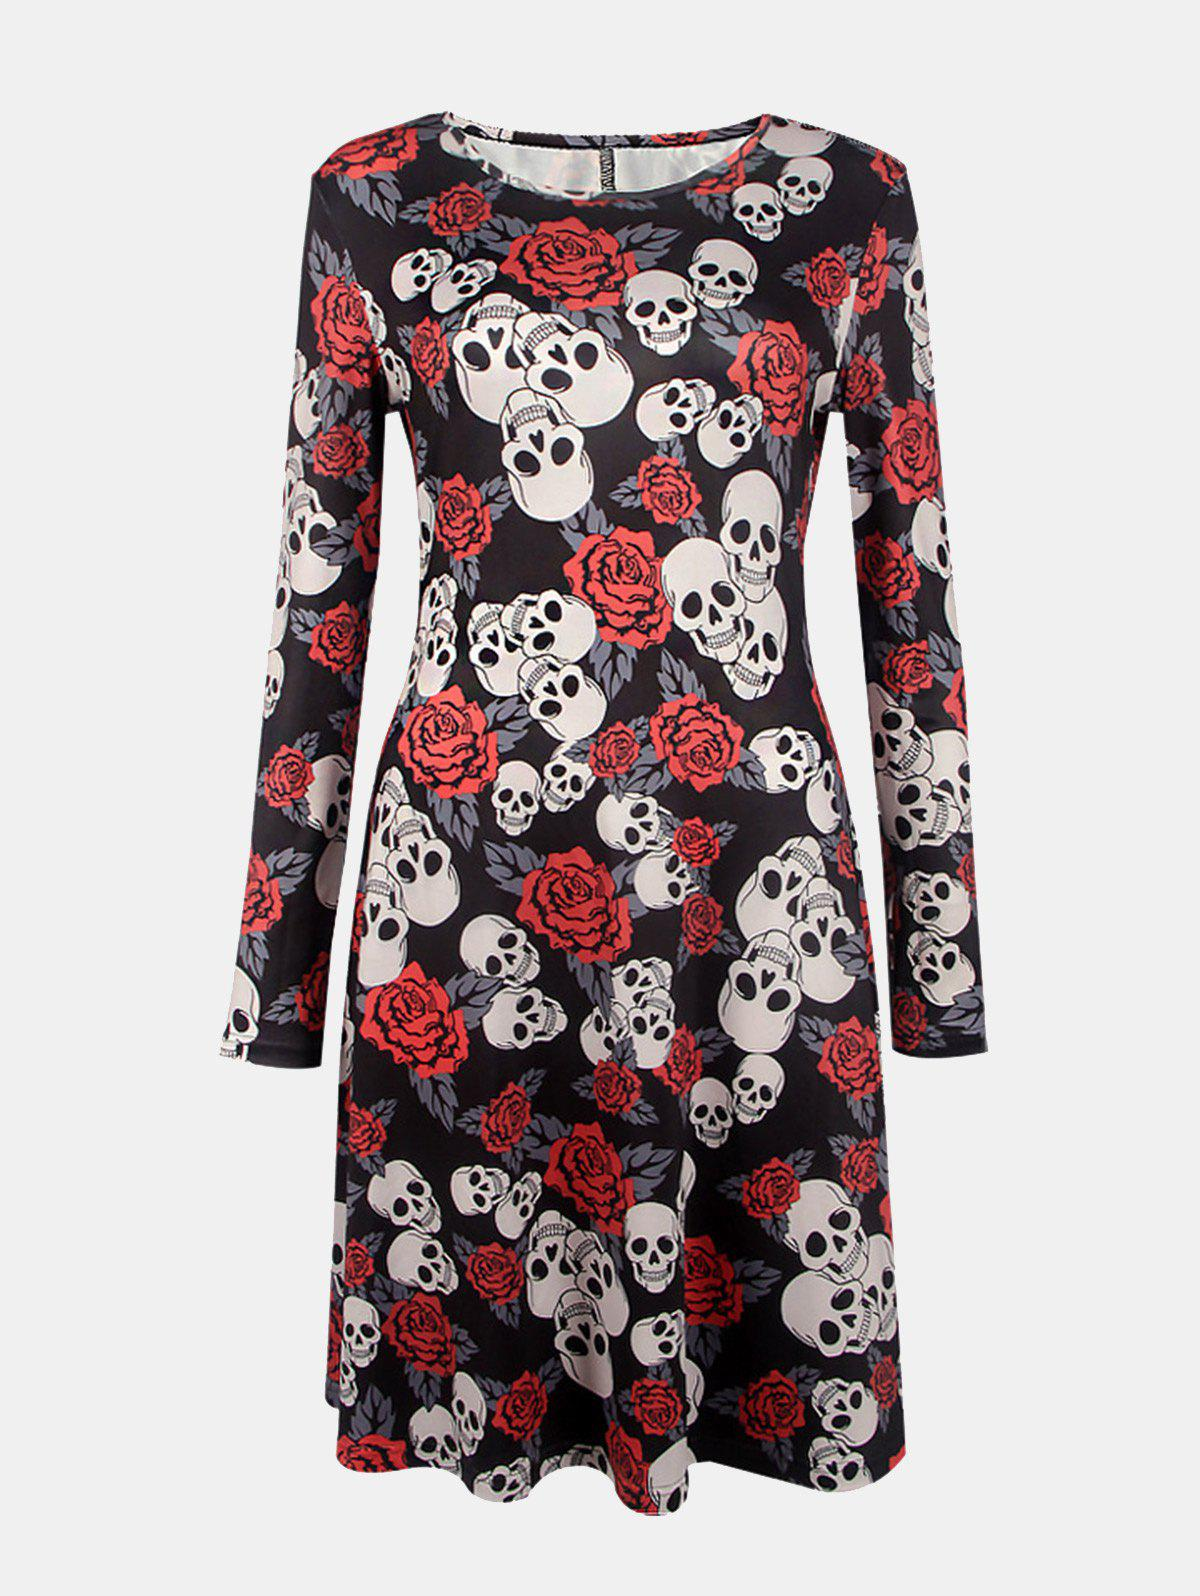 New Women's Round Neck Long Sleeves Halloween Printing A-line Dress